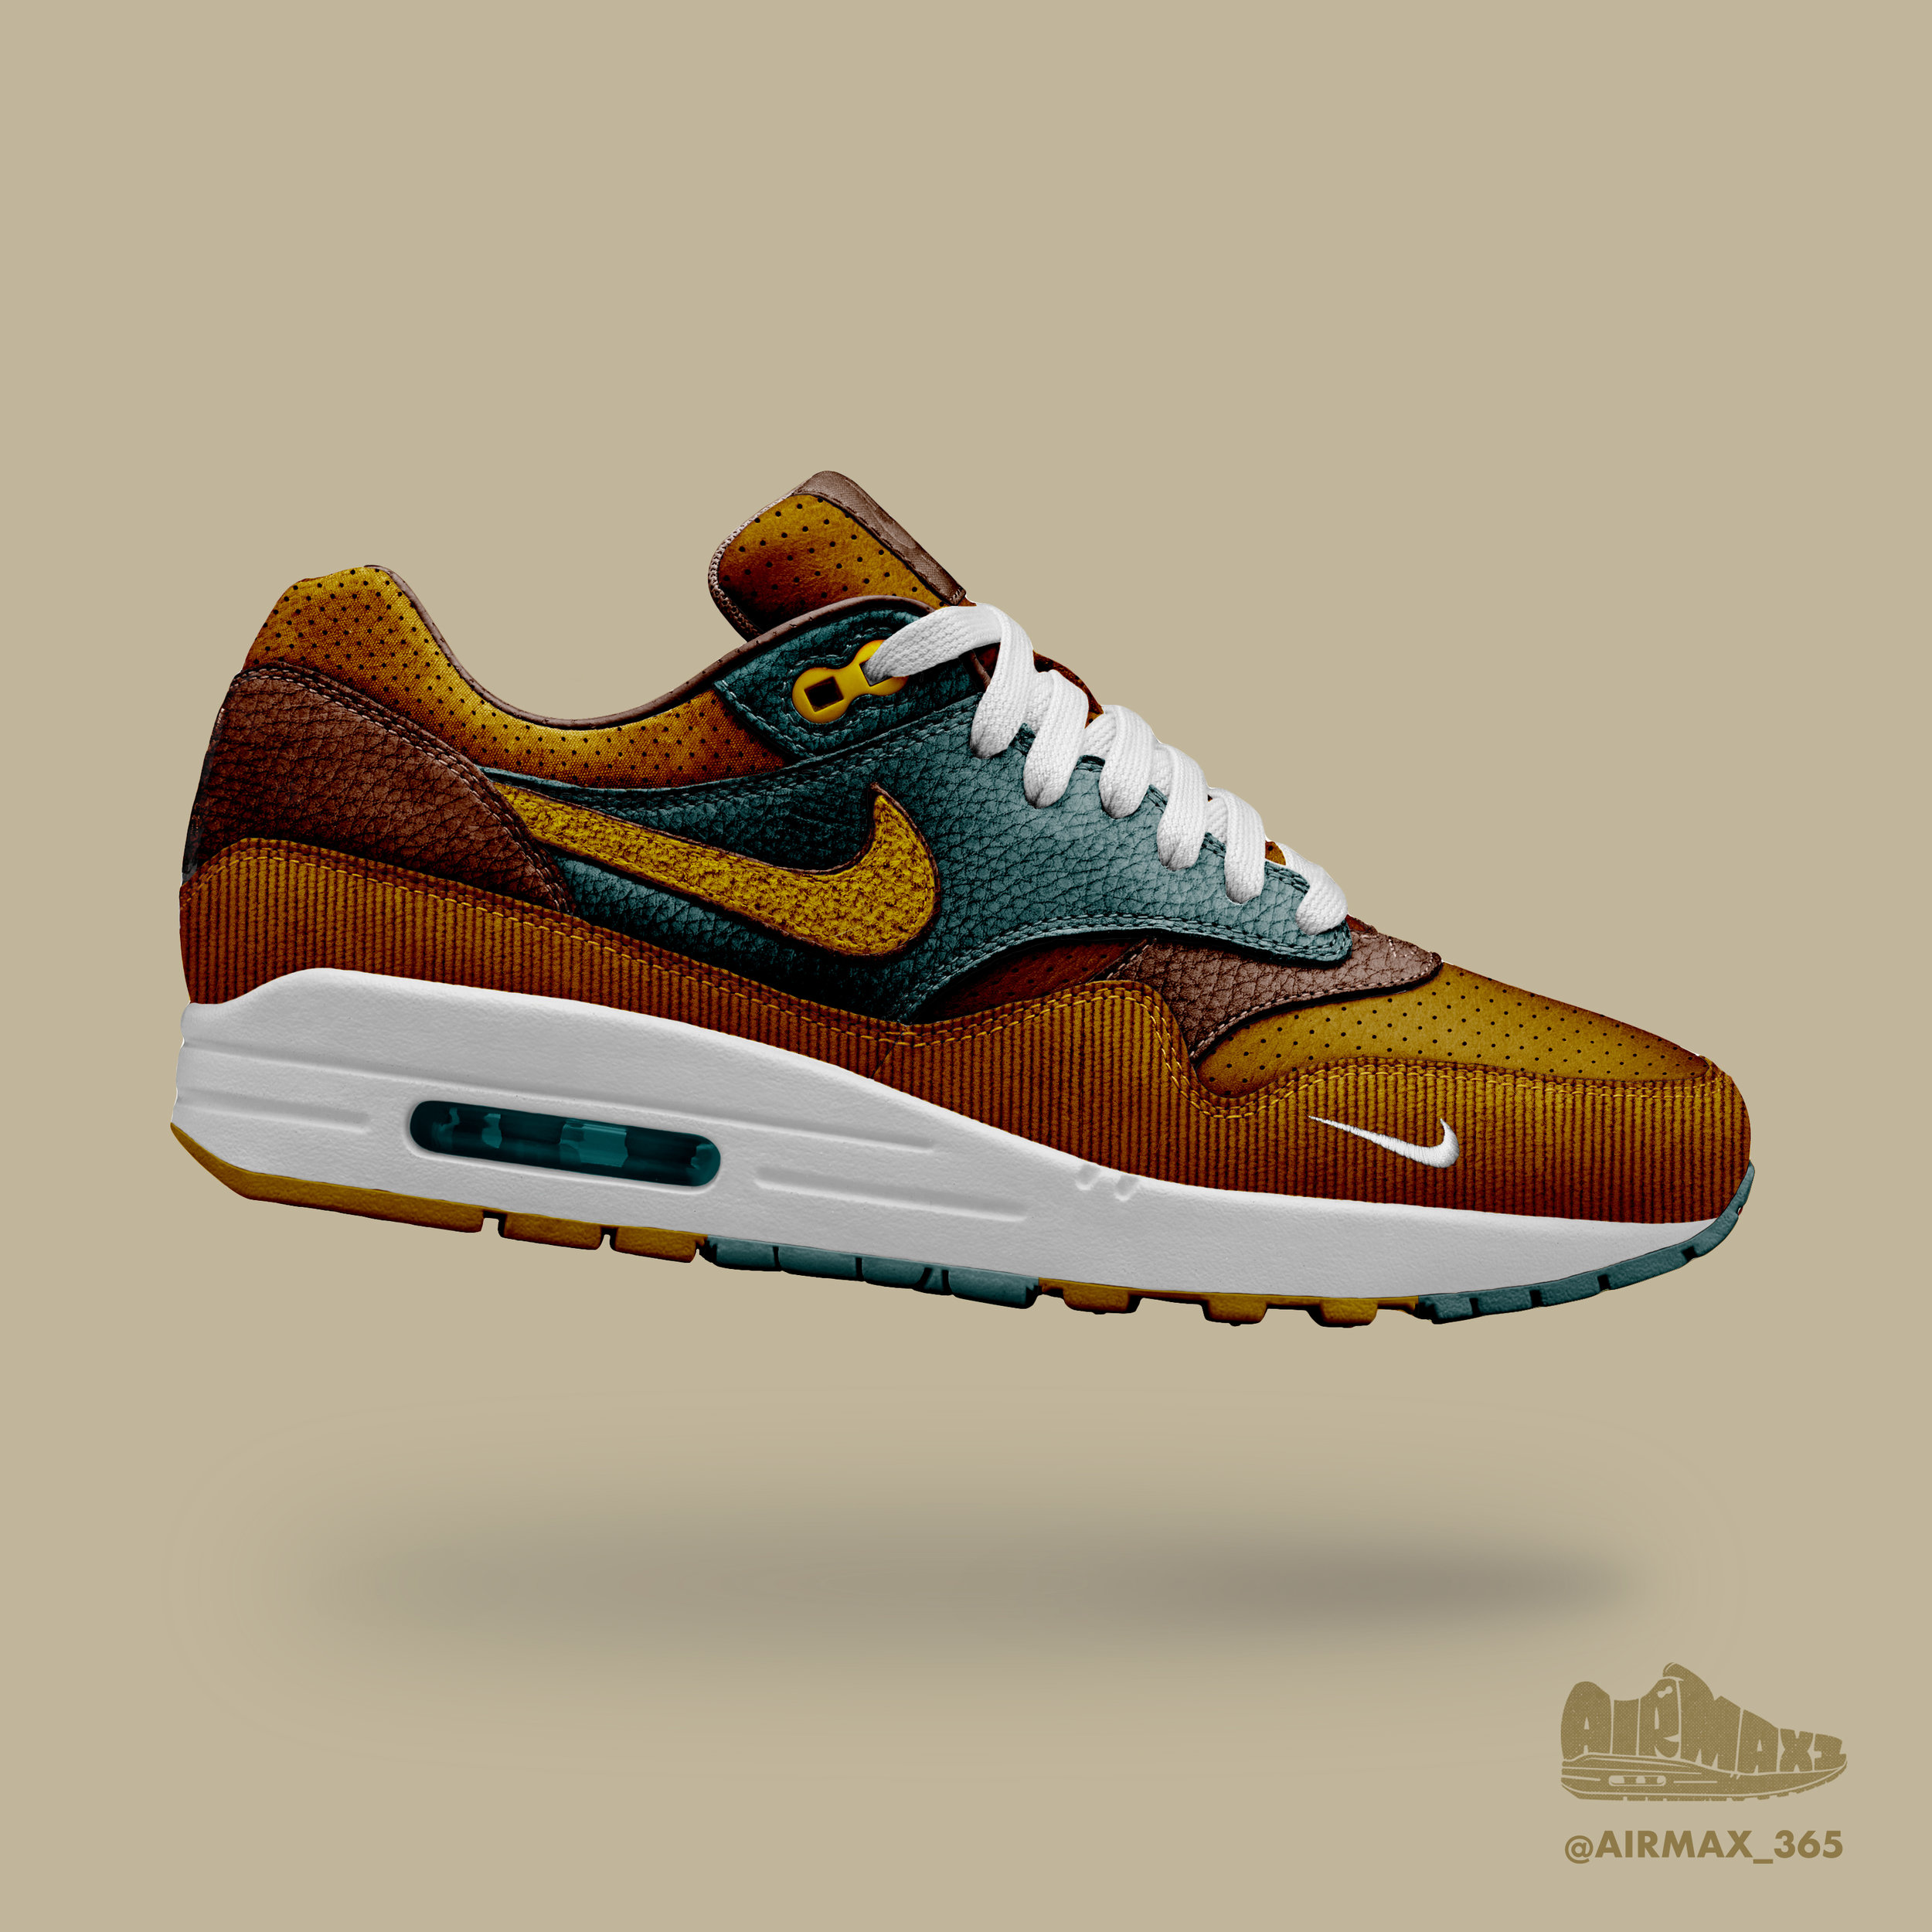 Day 304: Air Max 1 Russet